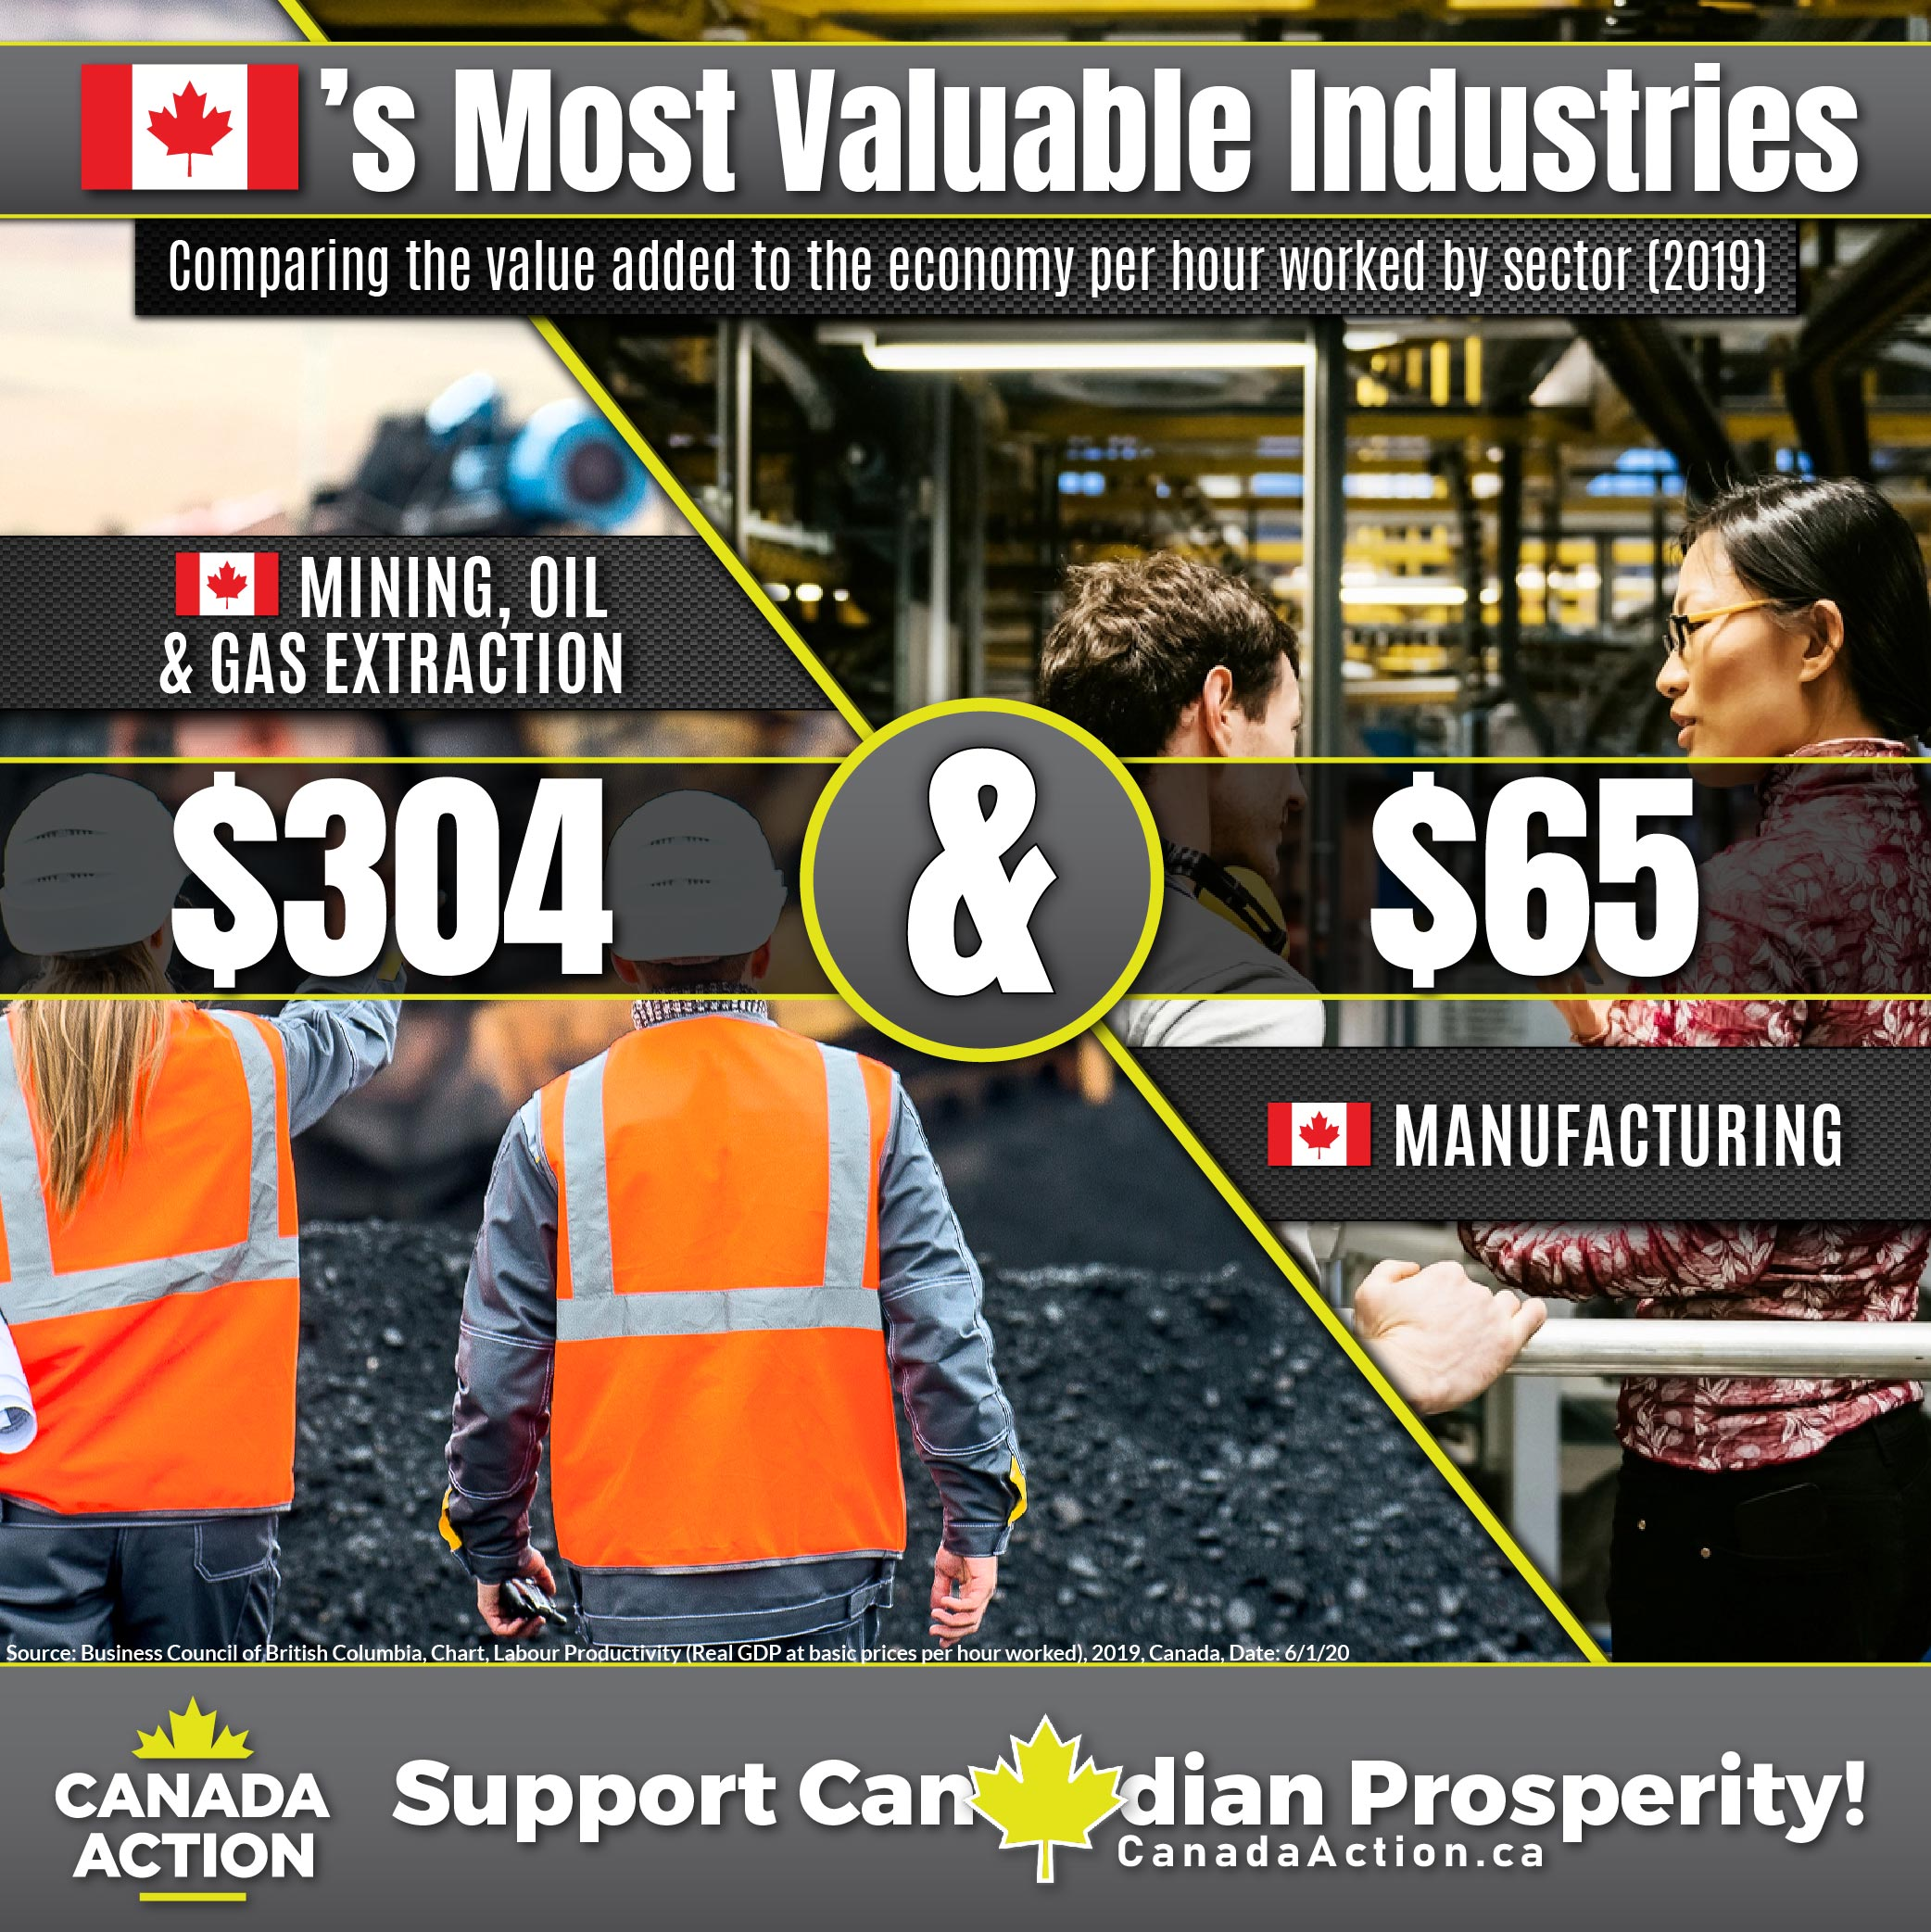 labour productivity canada manufacturing oil and gas extraction mining